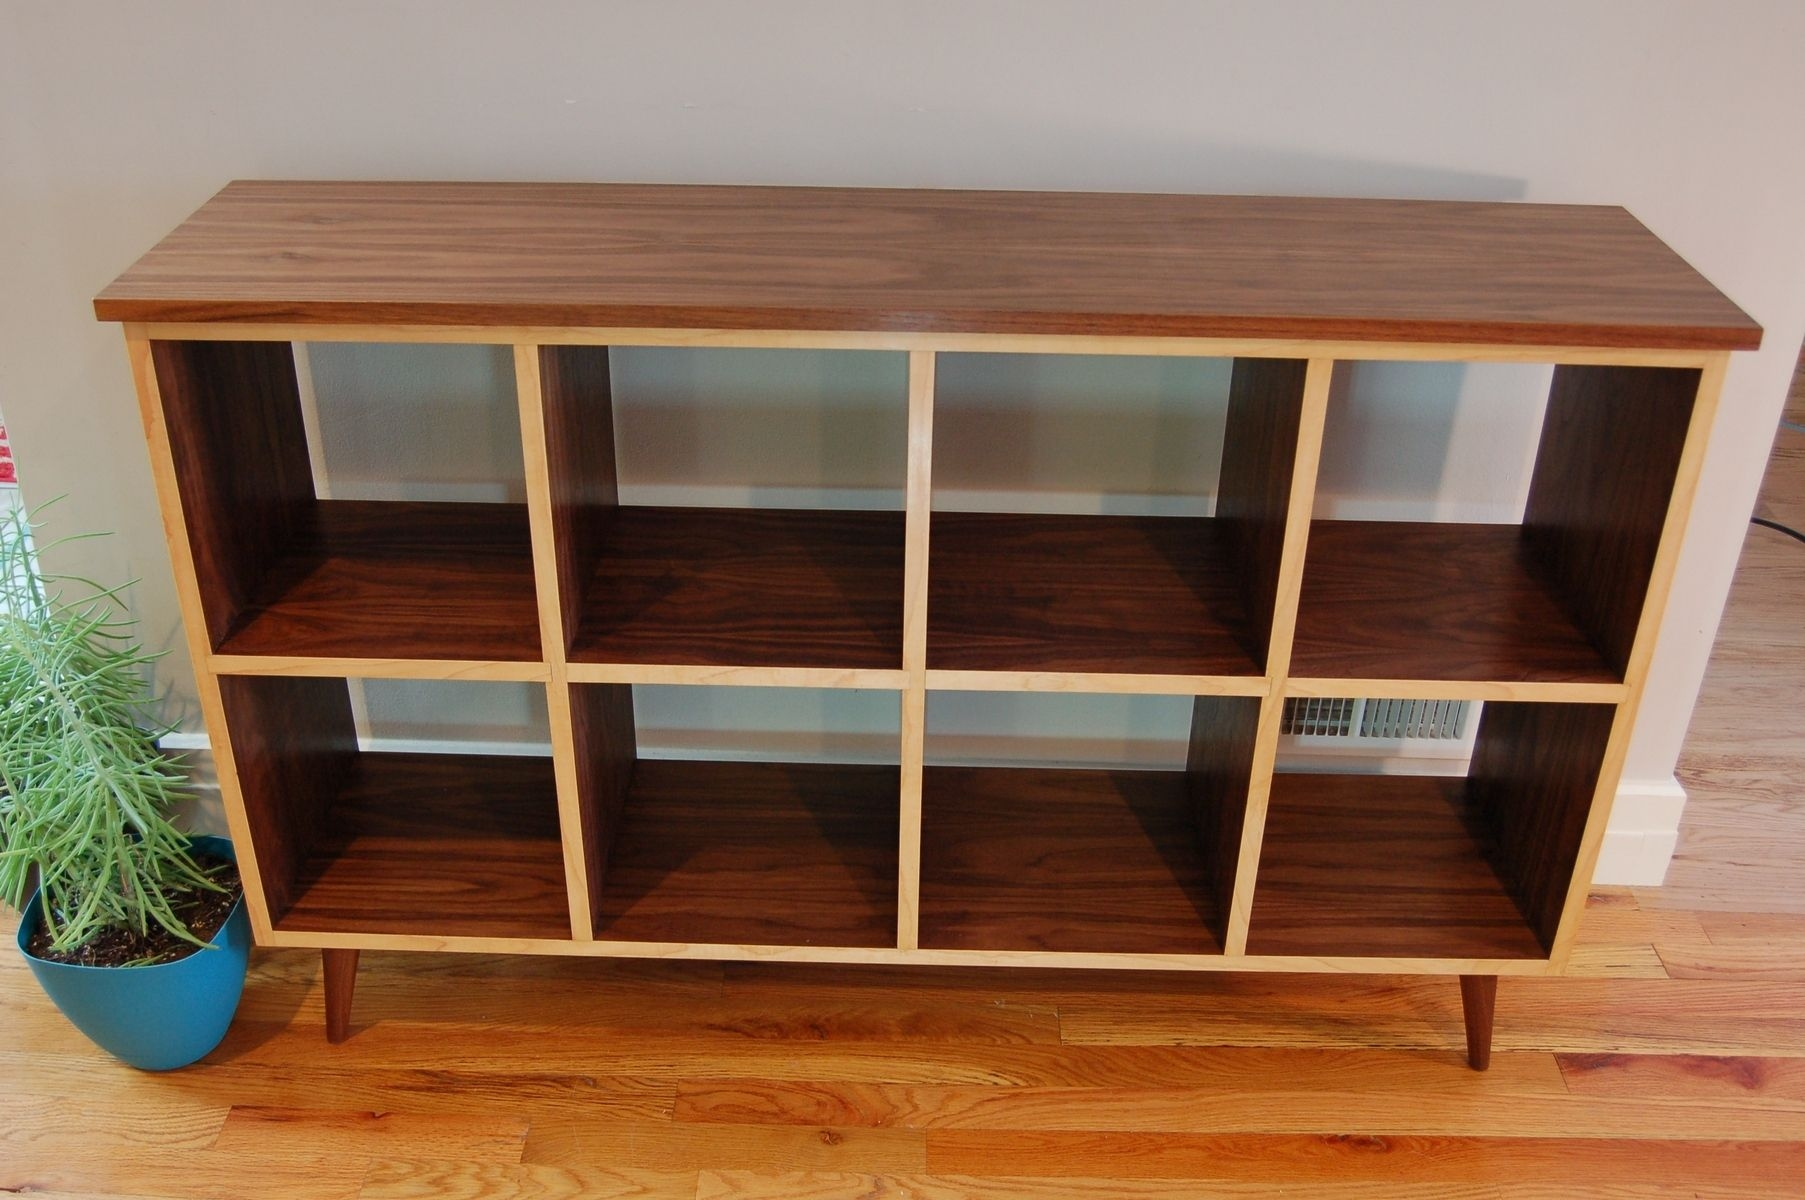 Handmade Furnishings Walnut Bookcase With Maple Edge Banding Intended For Handmade Bookcase (View 8 of 15)